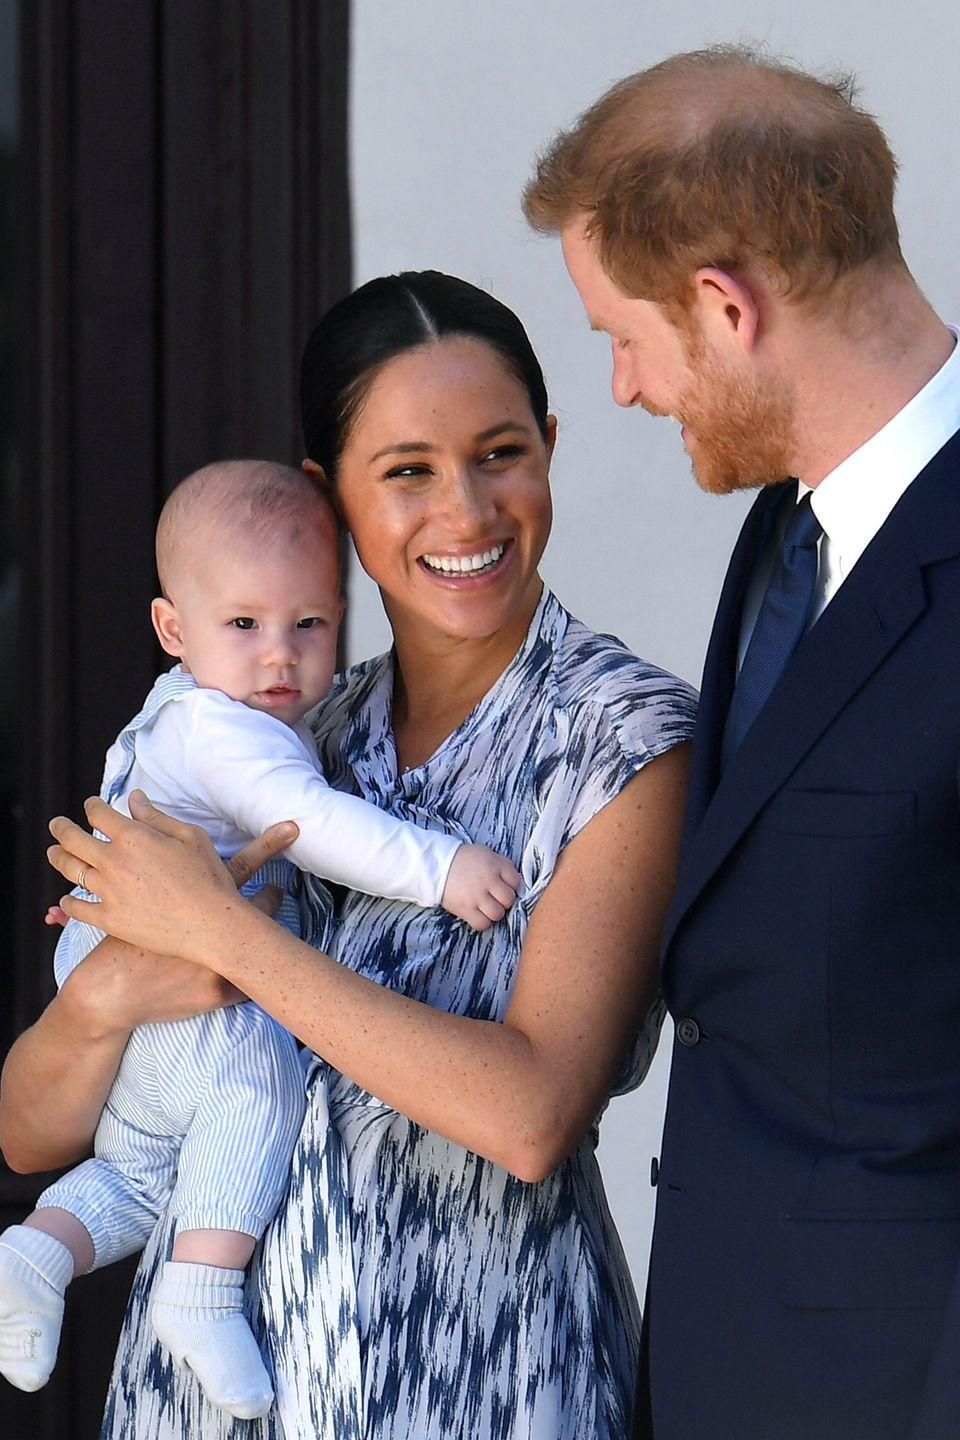 <p>Holding baby Archie, Meghan laughs while Harry looks down at the mother-son duo in Cape Town, South Africa.</p>